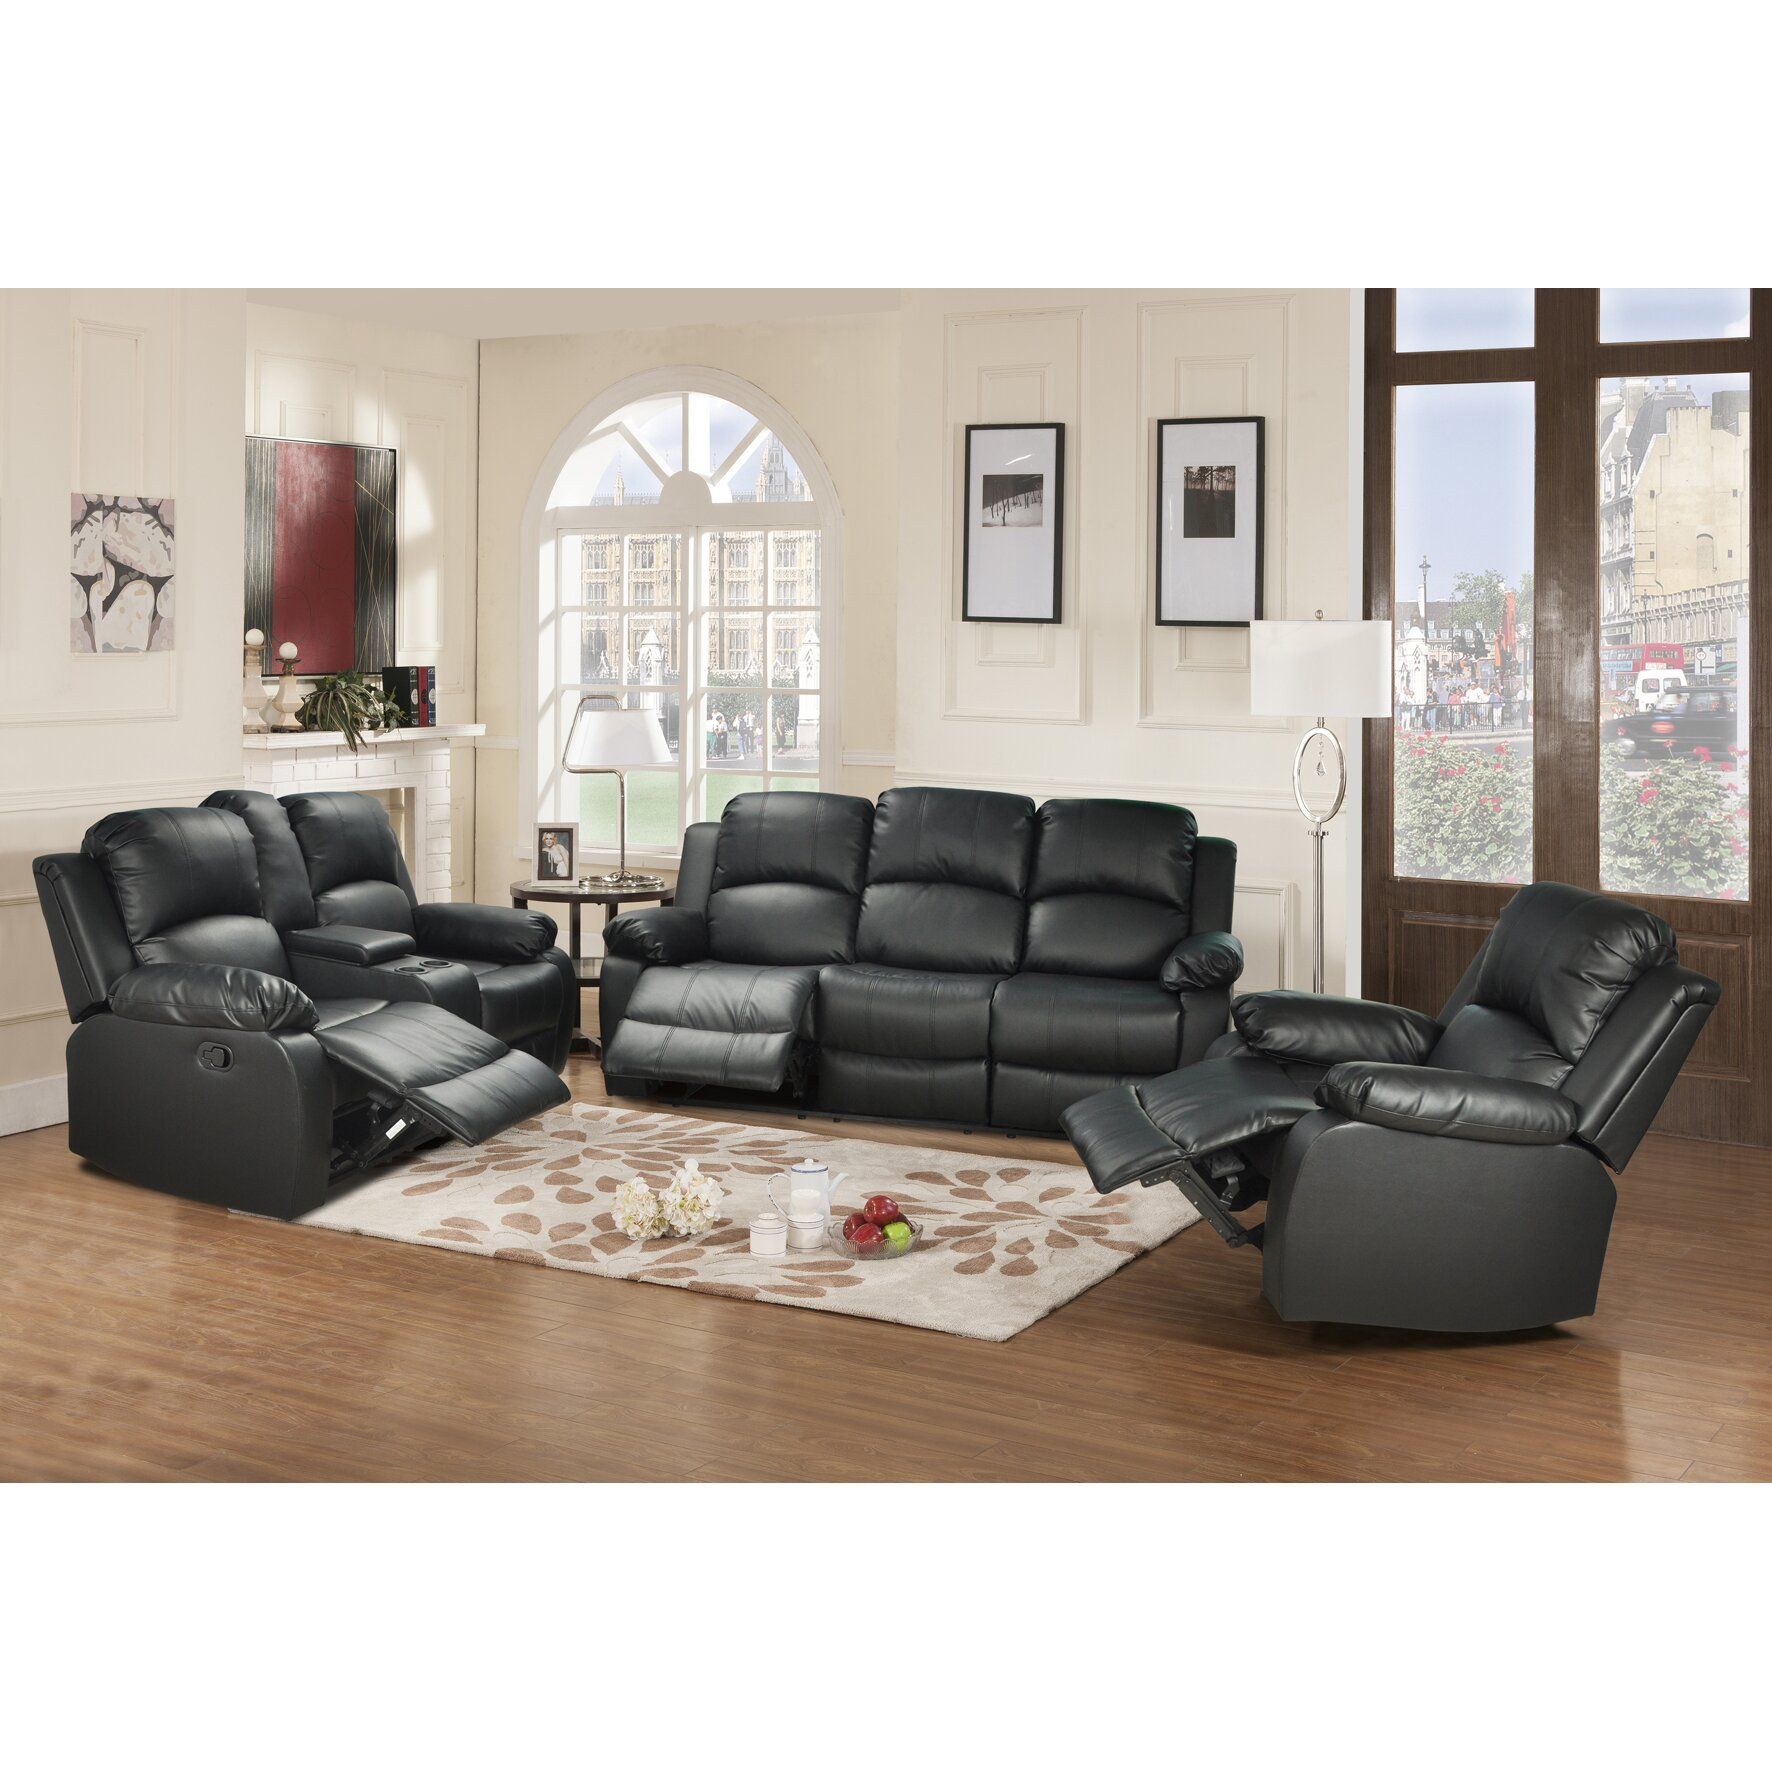 Beverly fine furniture amado 3 piece reclining living room for 3 piece living room set